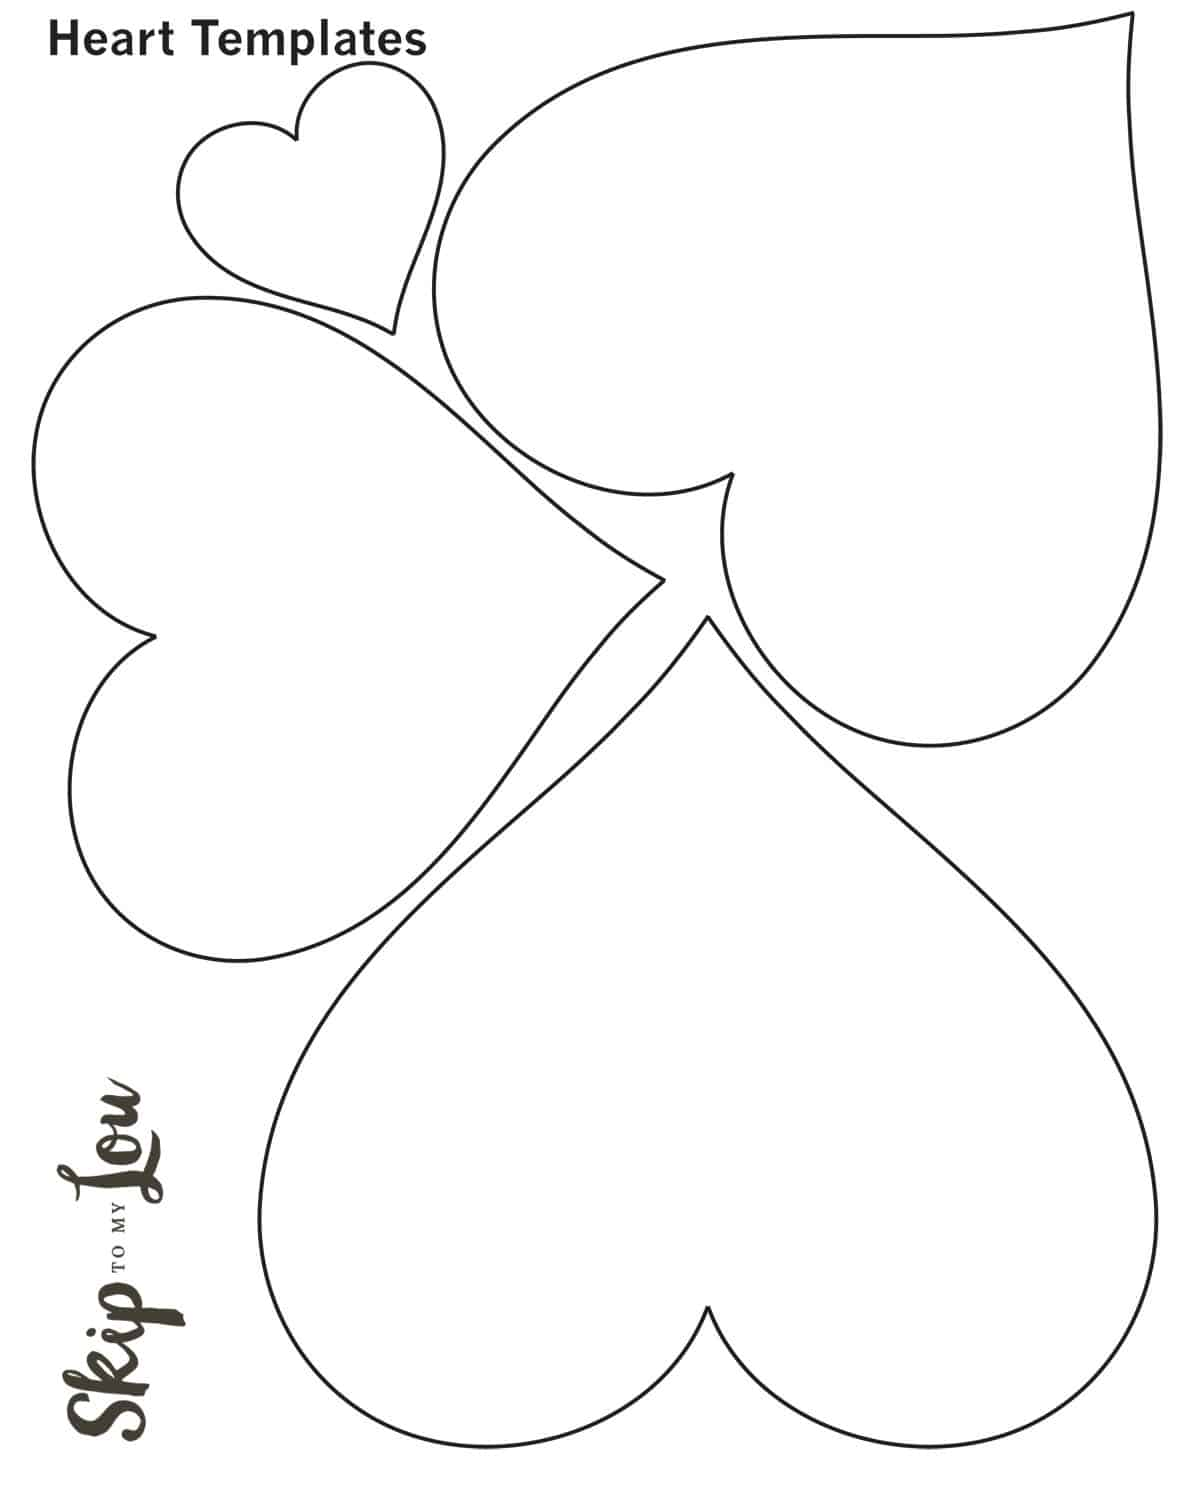 Heart Patterns Worksheet For Preschoolers